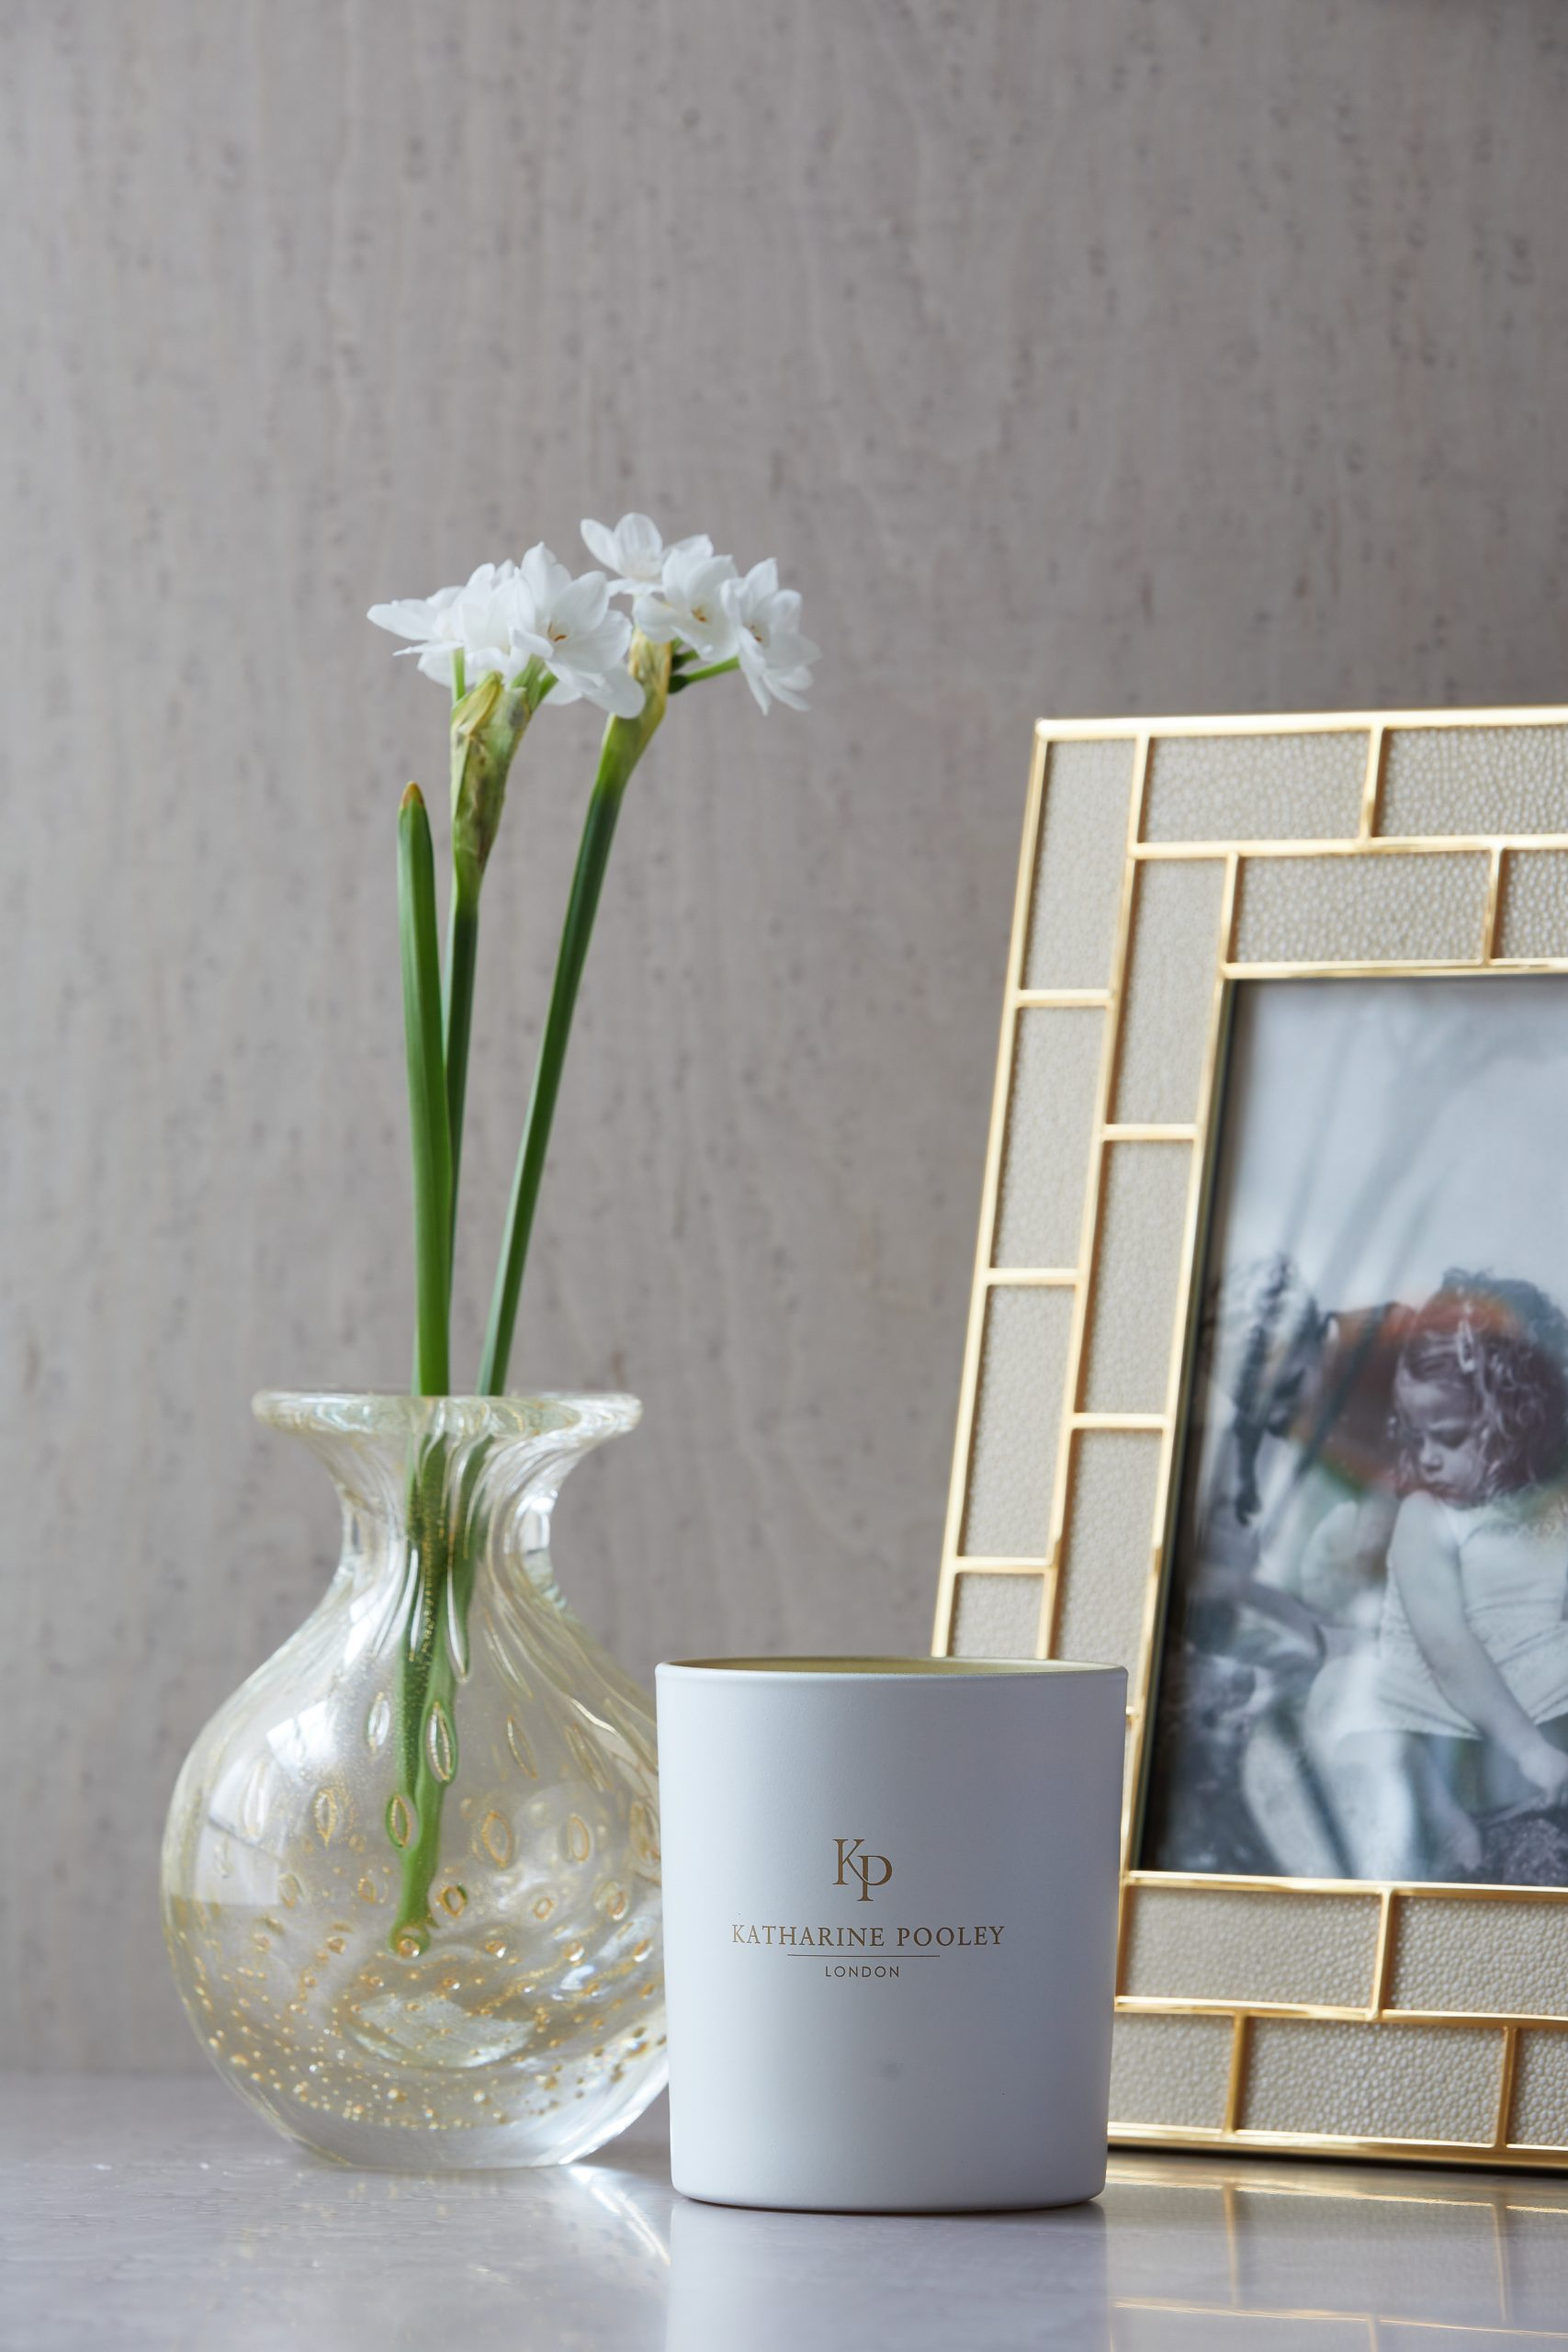 Picture frames are a beautiful part of any home. In this image Katharine Pooley blends her frames into a home setting.